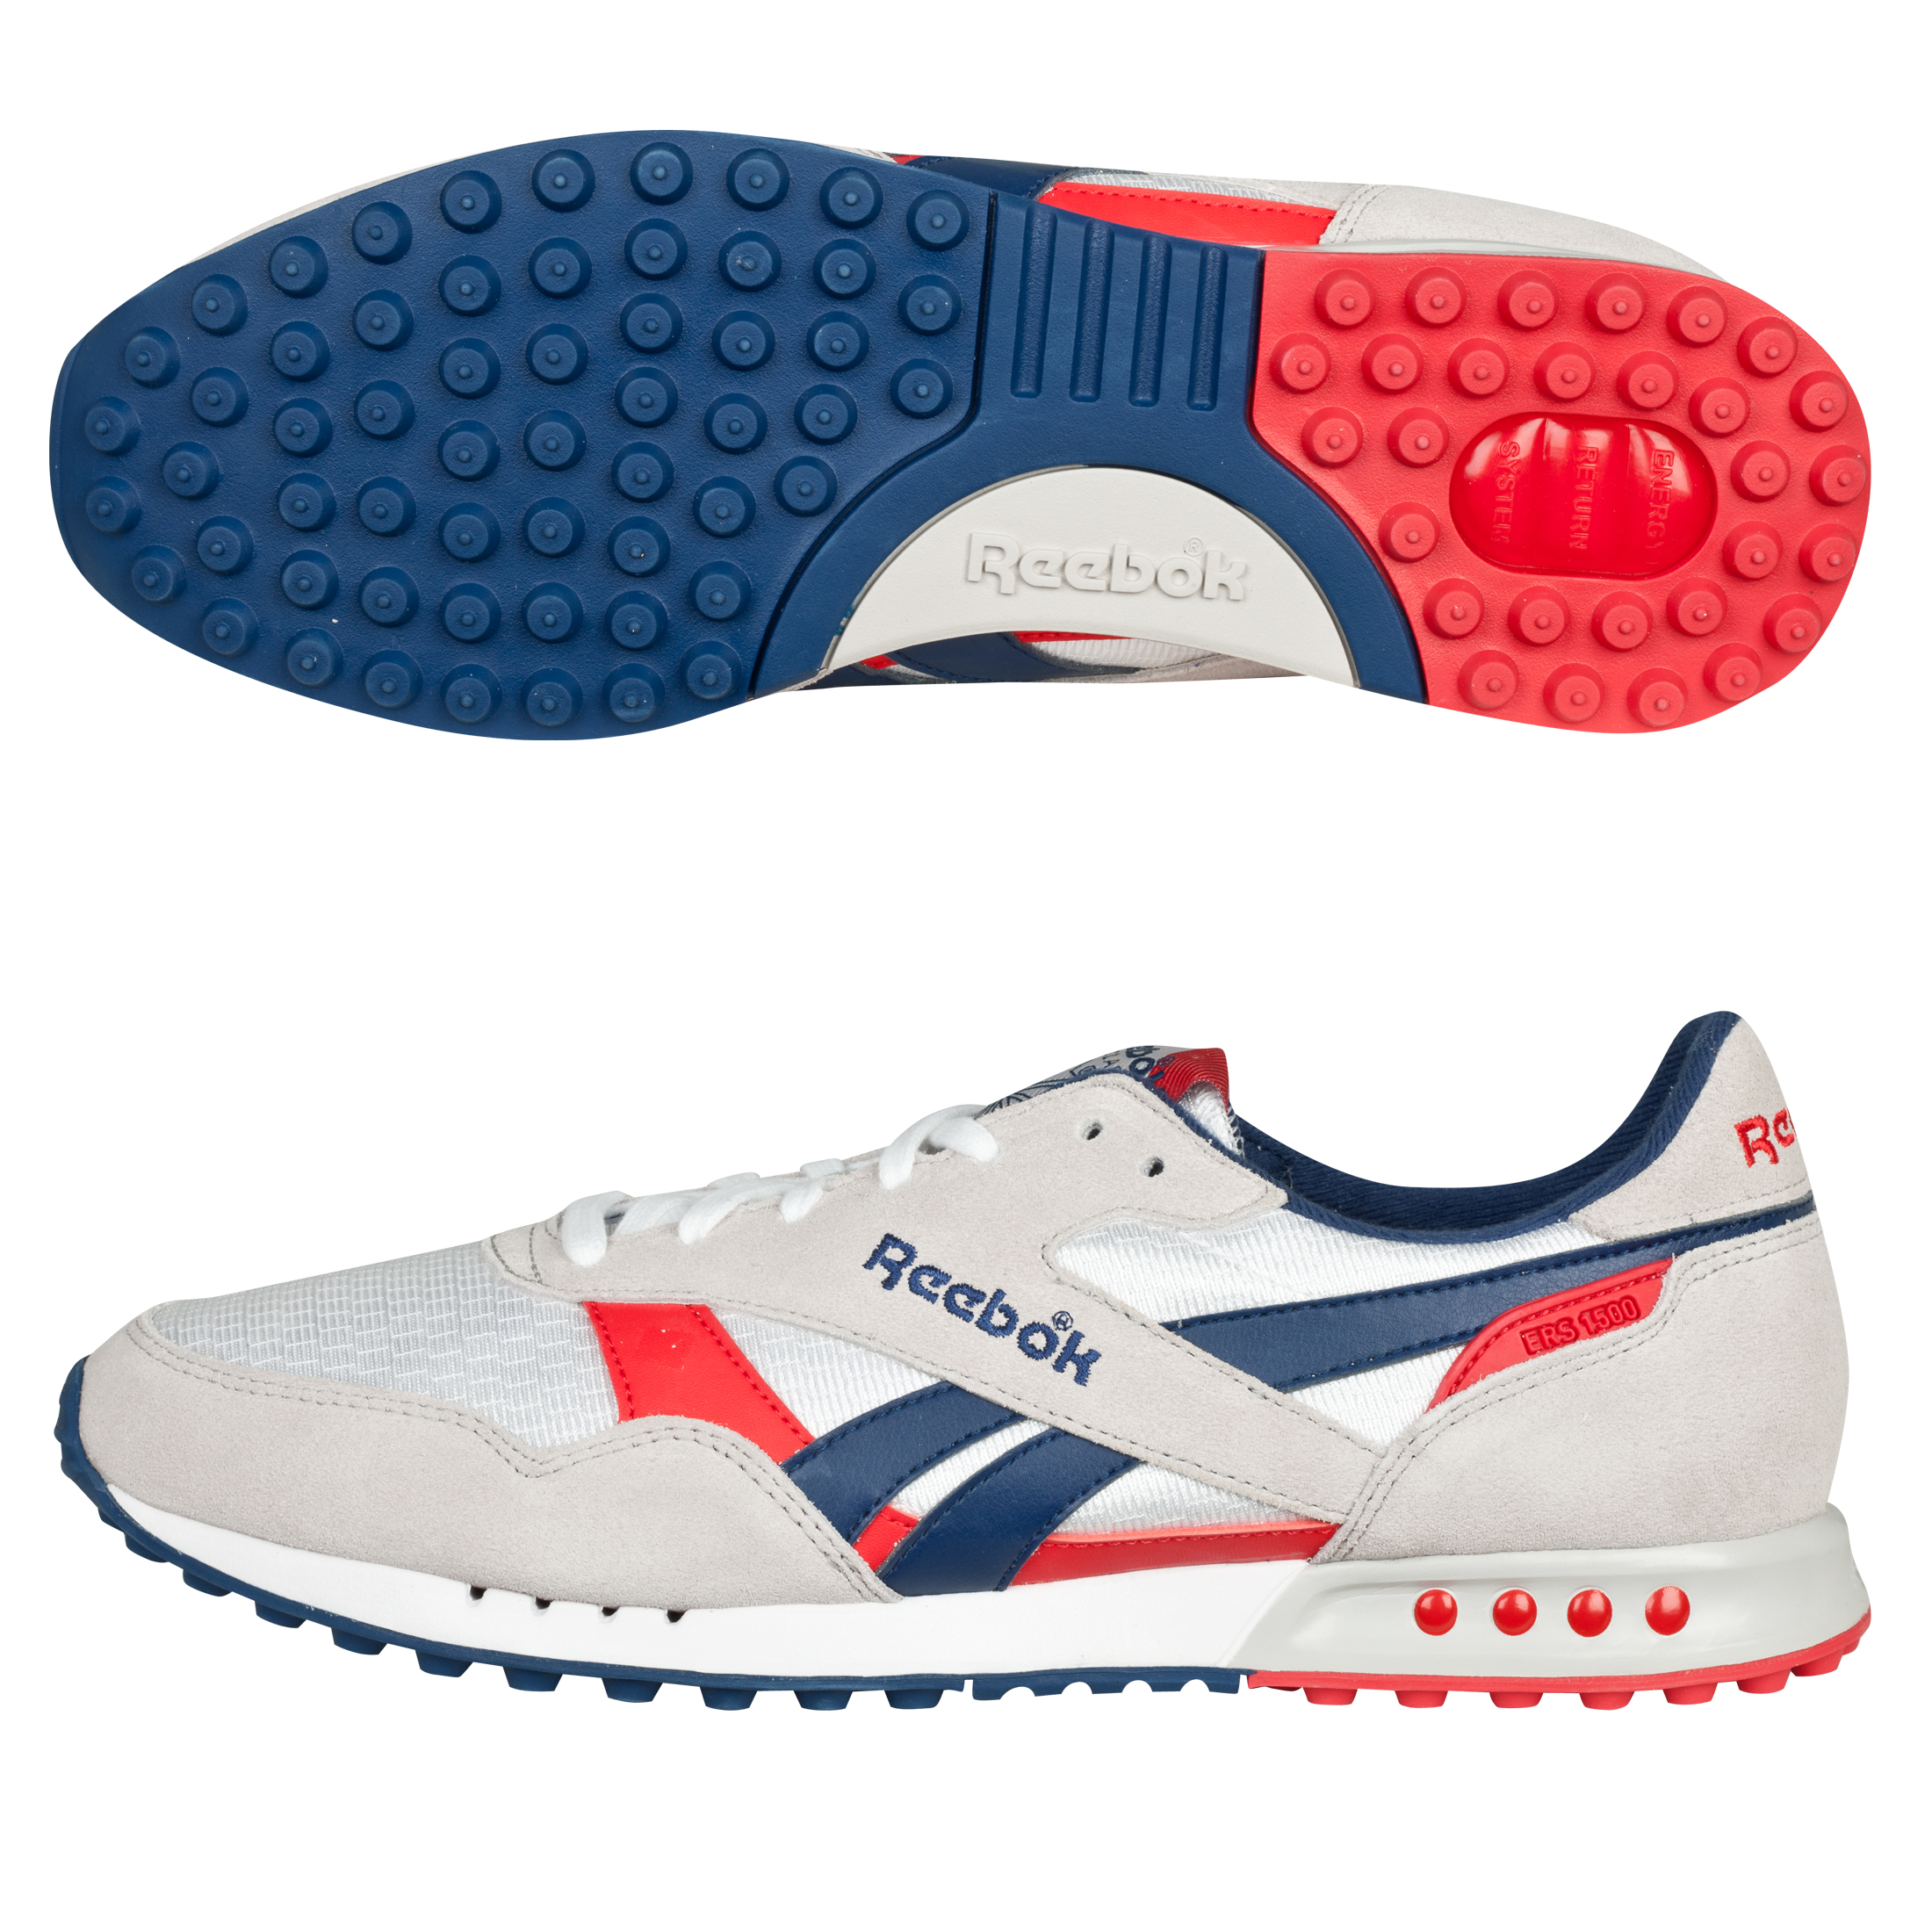 Reebok ERS 1500 Trainers - White/Steel/Club Blue/Red Attack